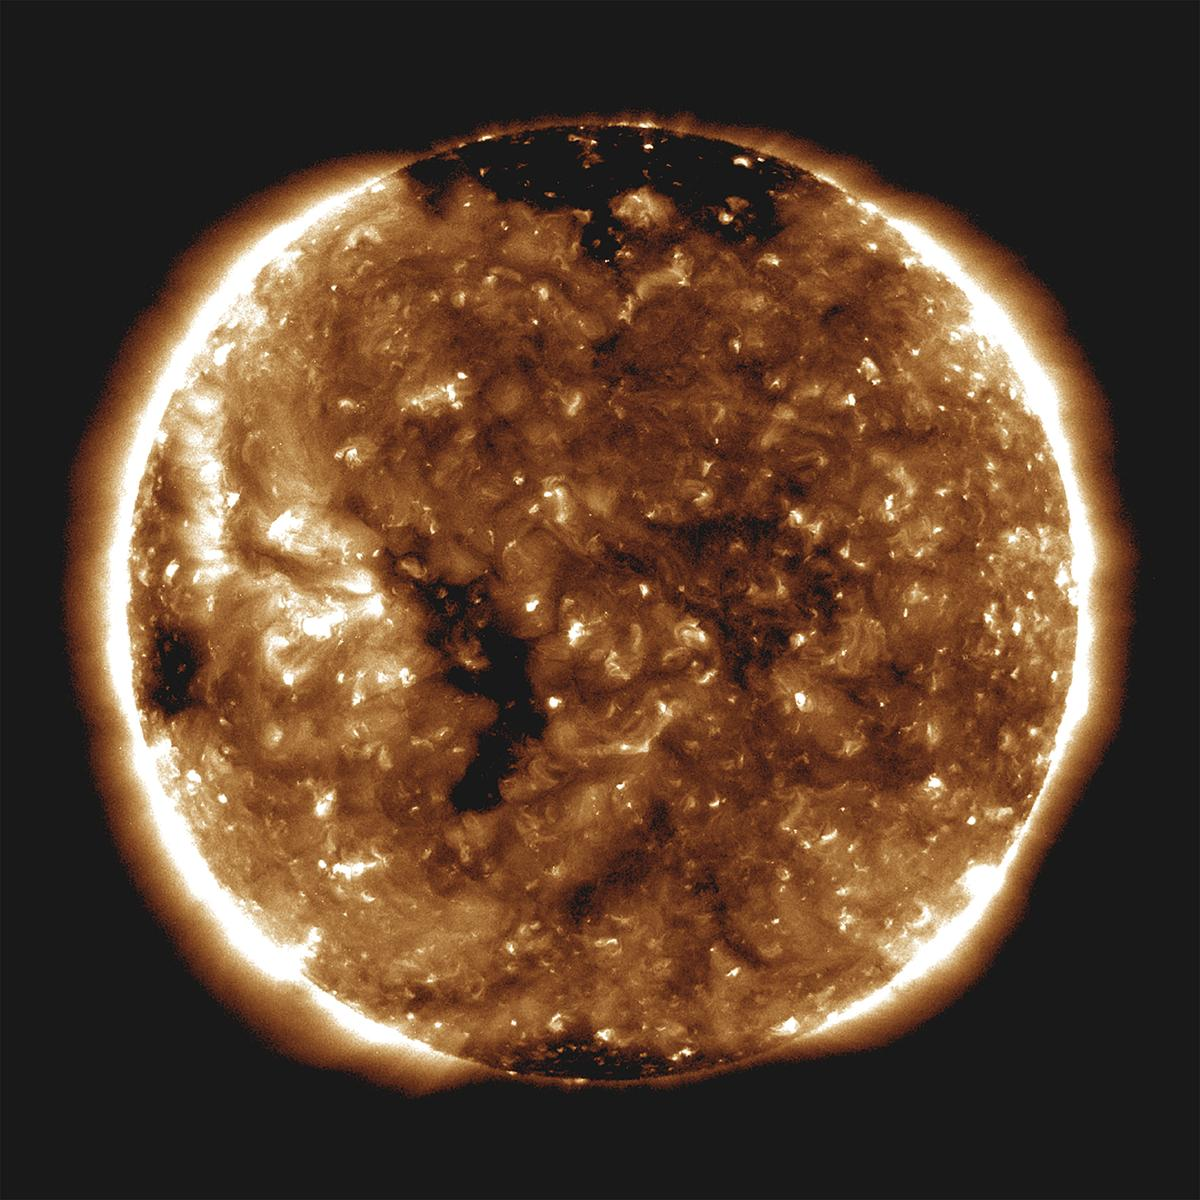 NASA's probe soaring near sun reveals surprises about solar wind